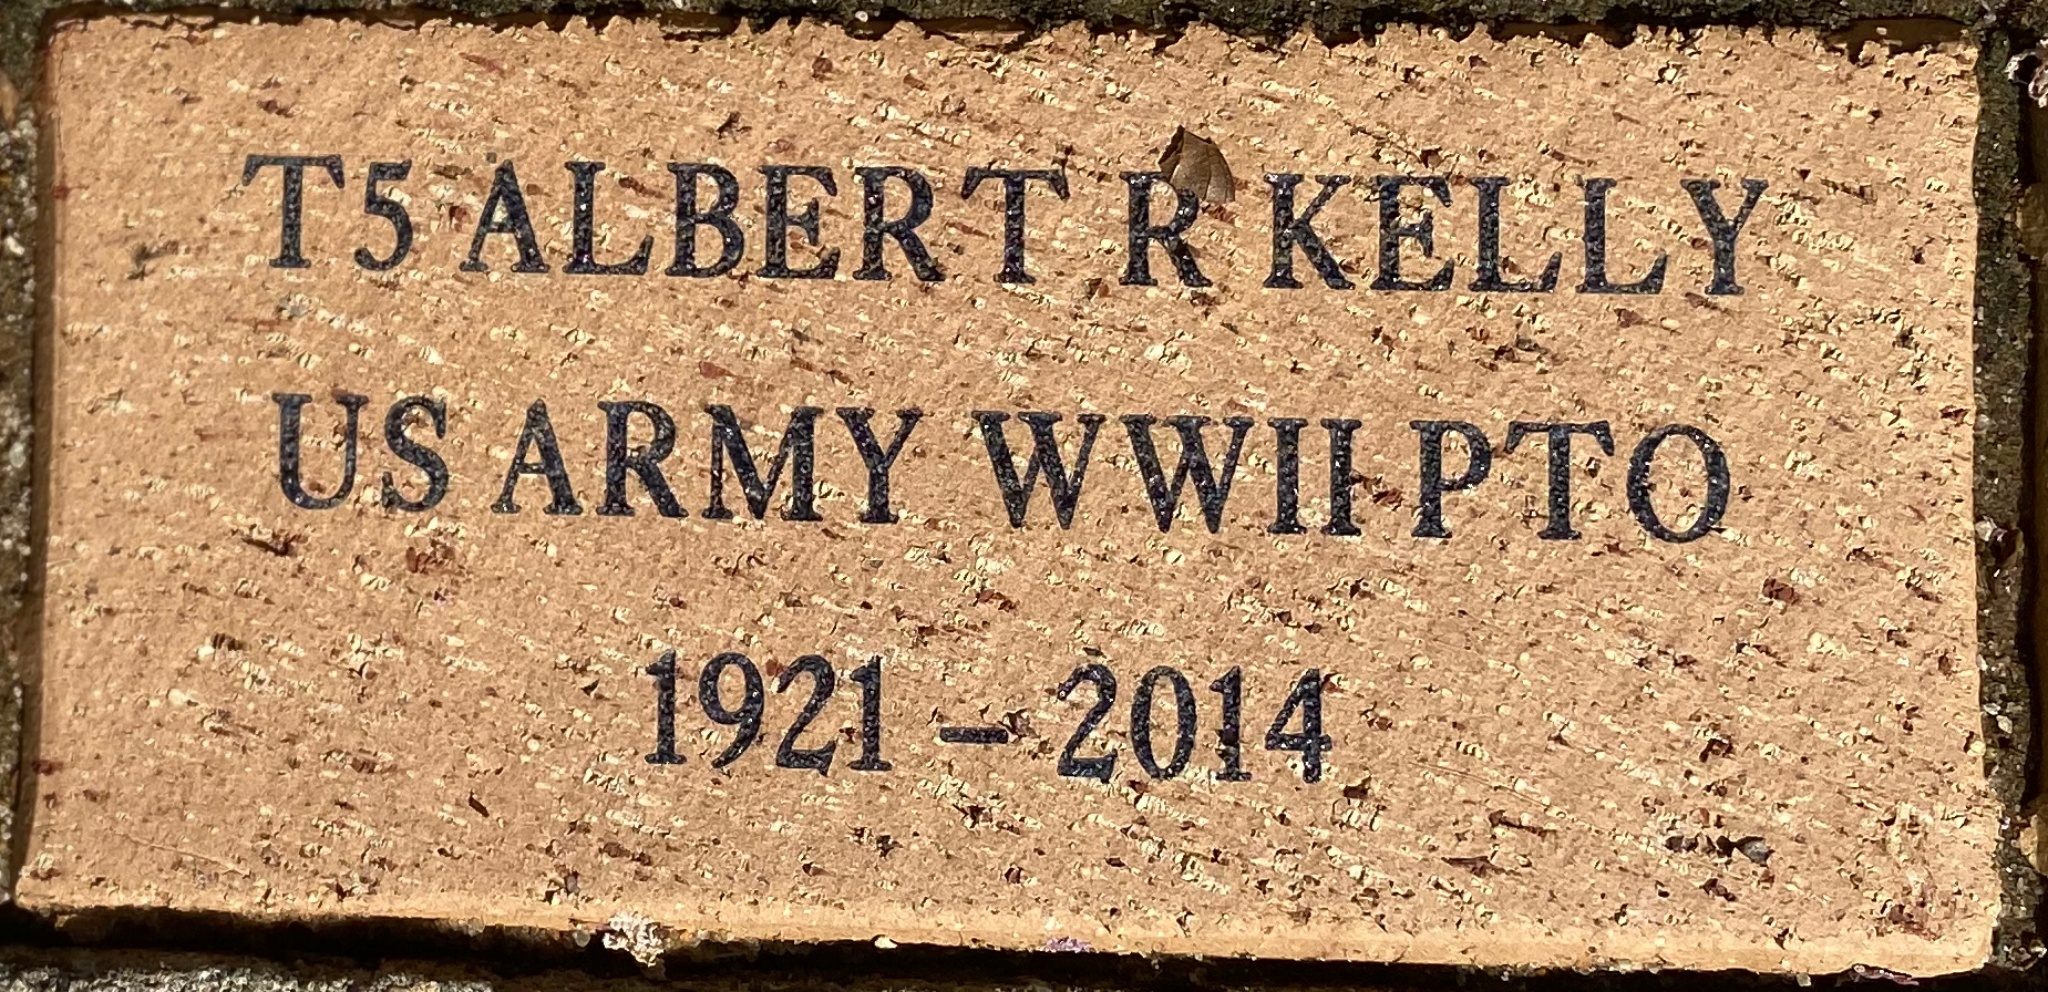 T5 Albert R Kelly US Army WWII PTO 1921-2014